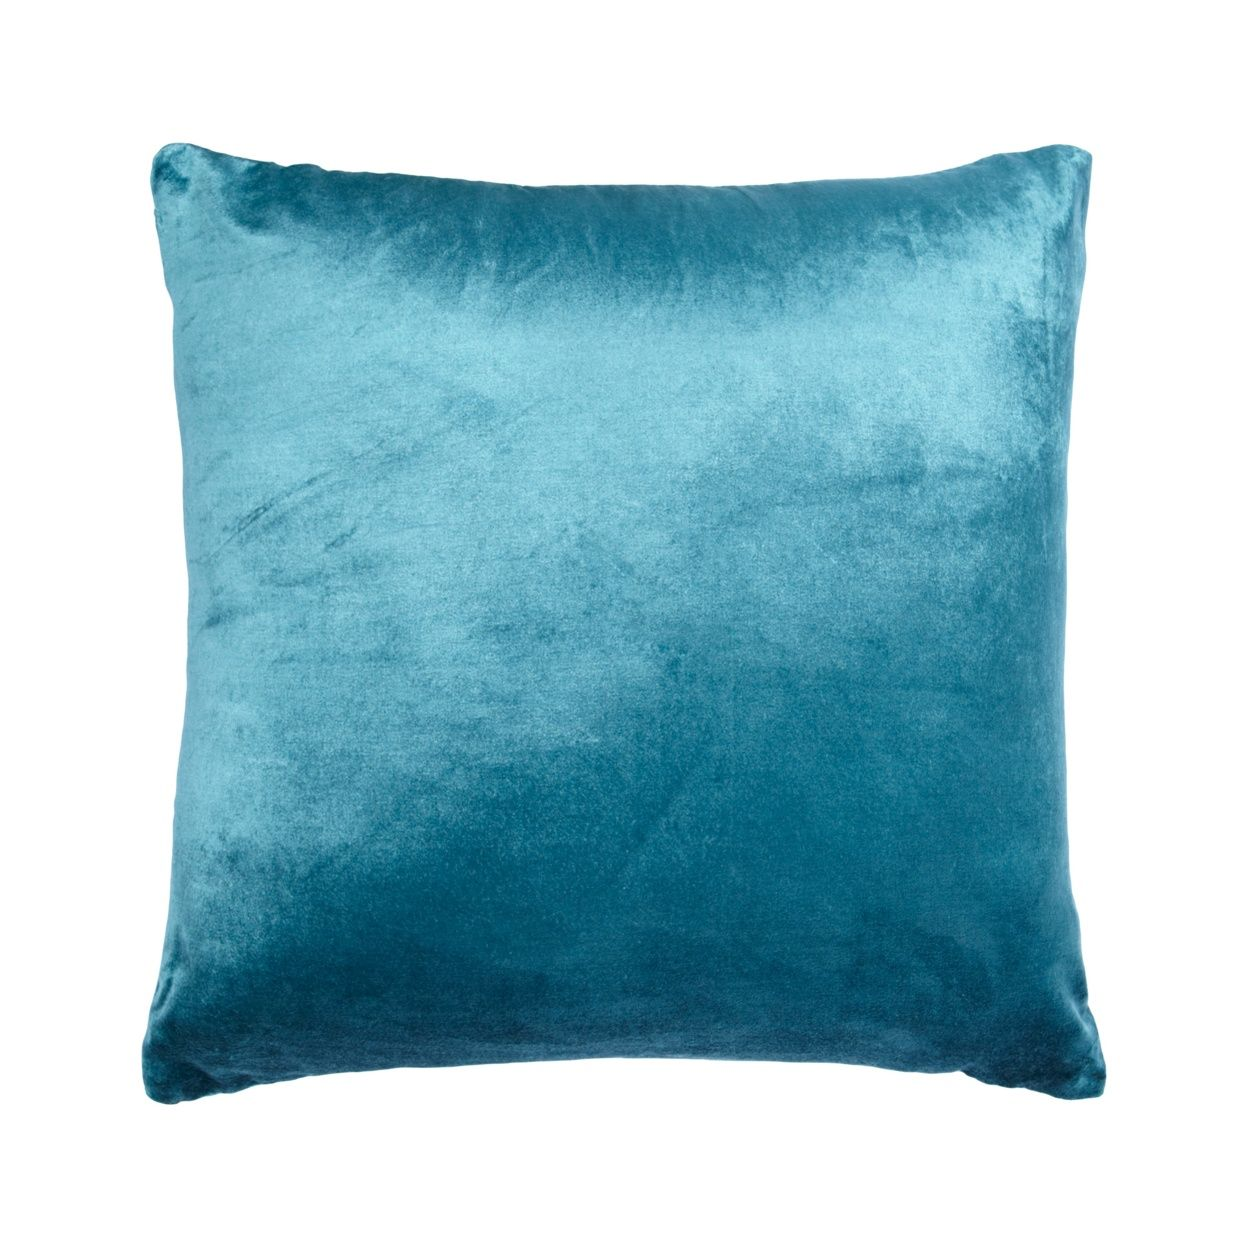 Great For Adding A Hint Of Colour To Any Room In The Home This Teal